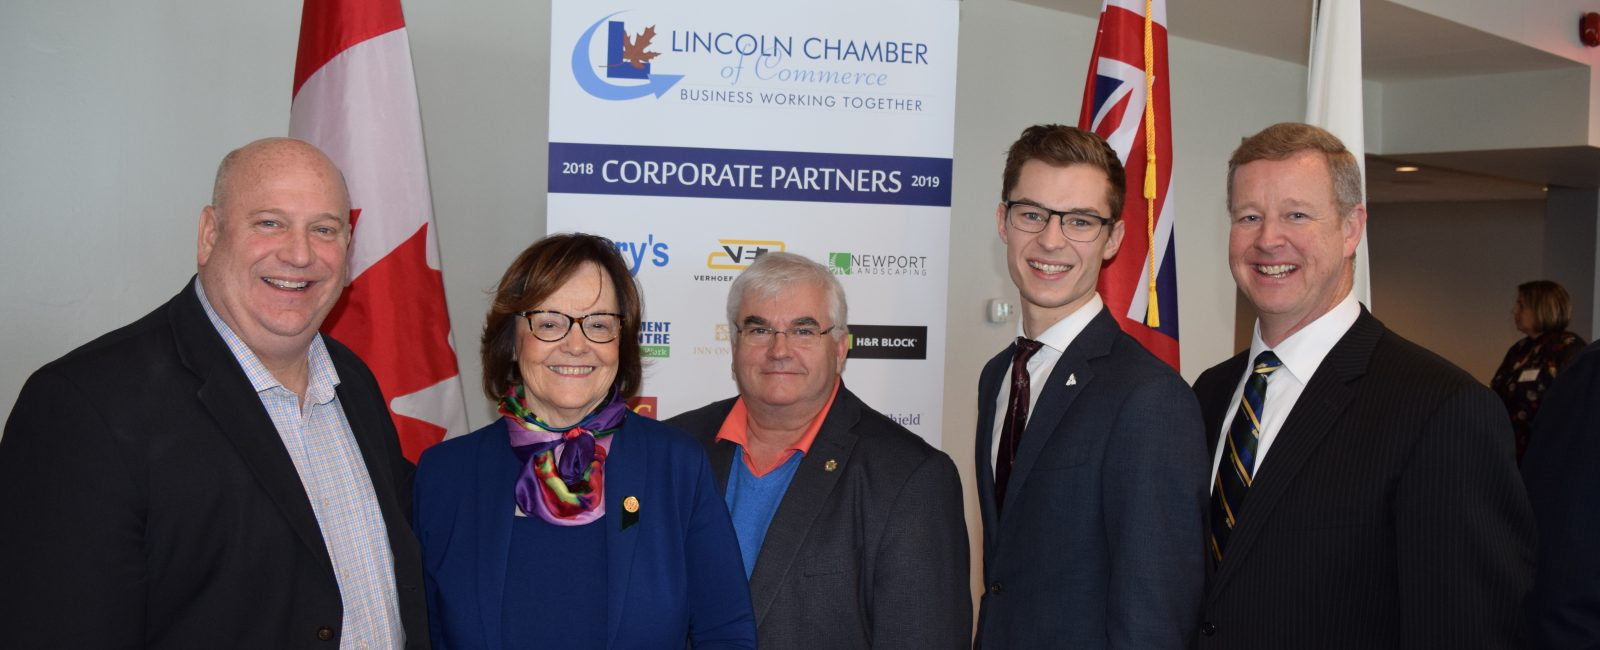 Lincoln Chamber of Commerce, Allison, Oosterhoff, Easton, Foster